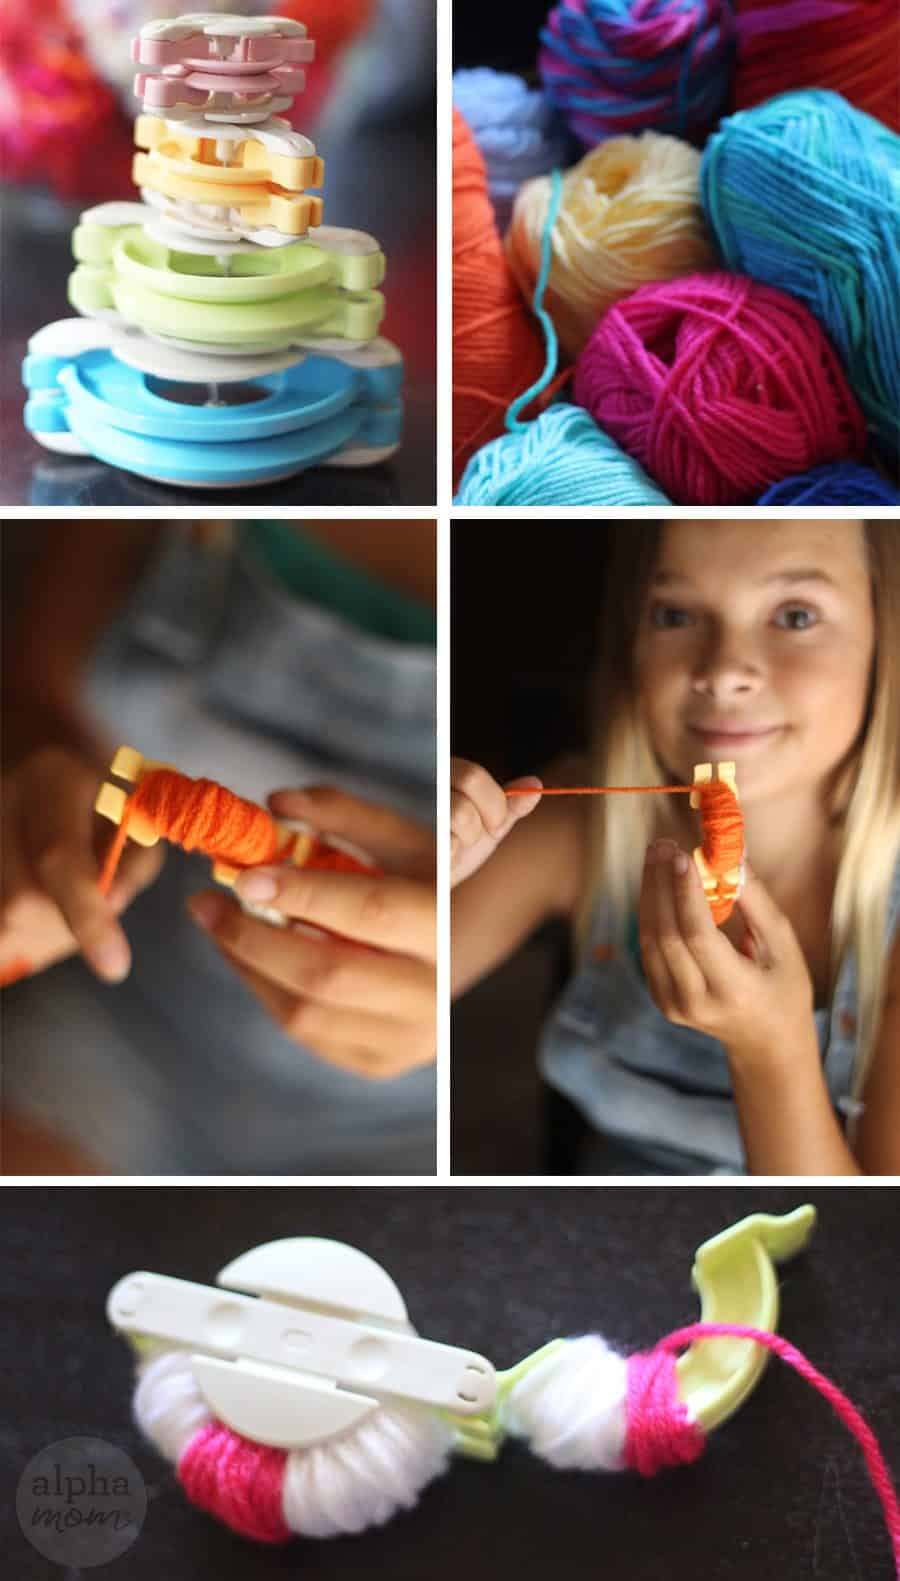 pom pom maker and rolls of different color yarn